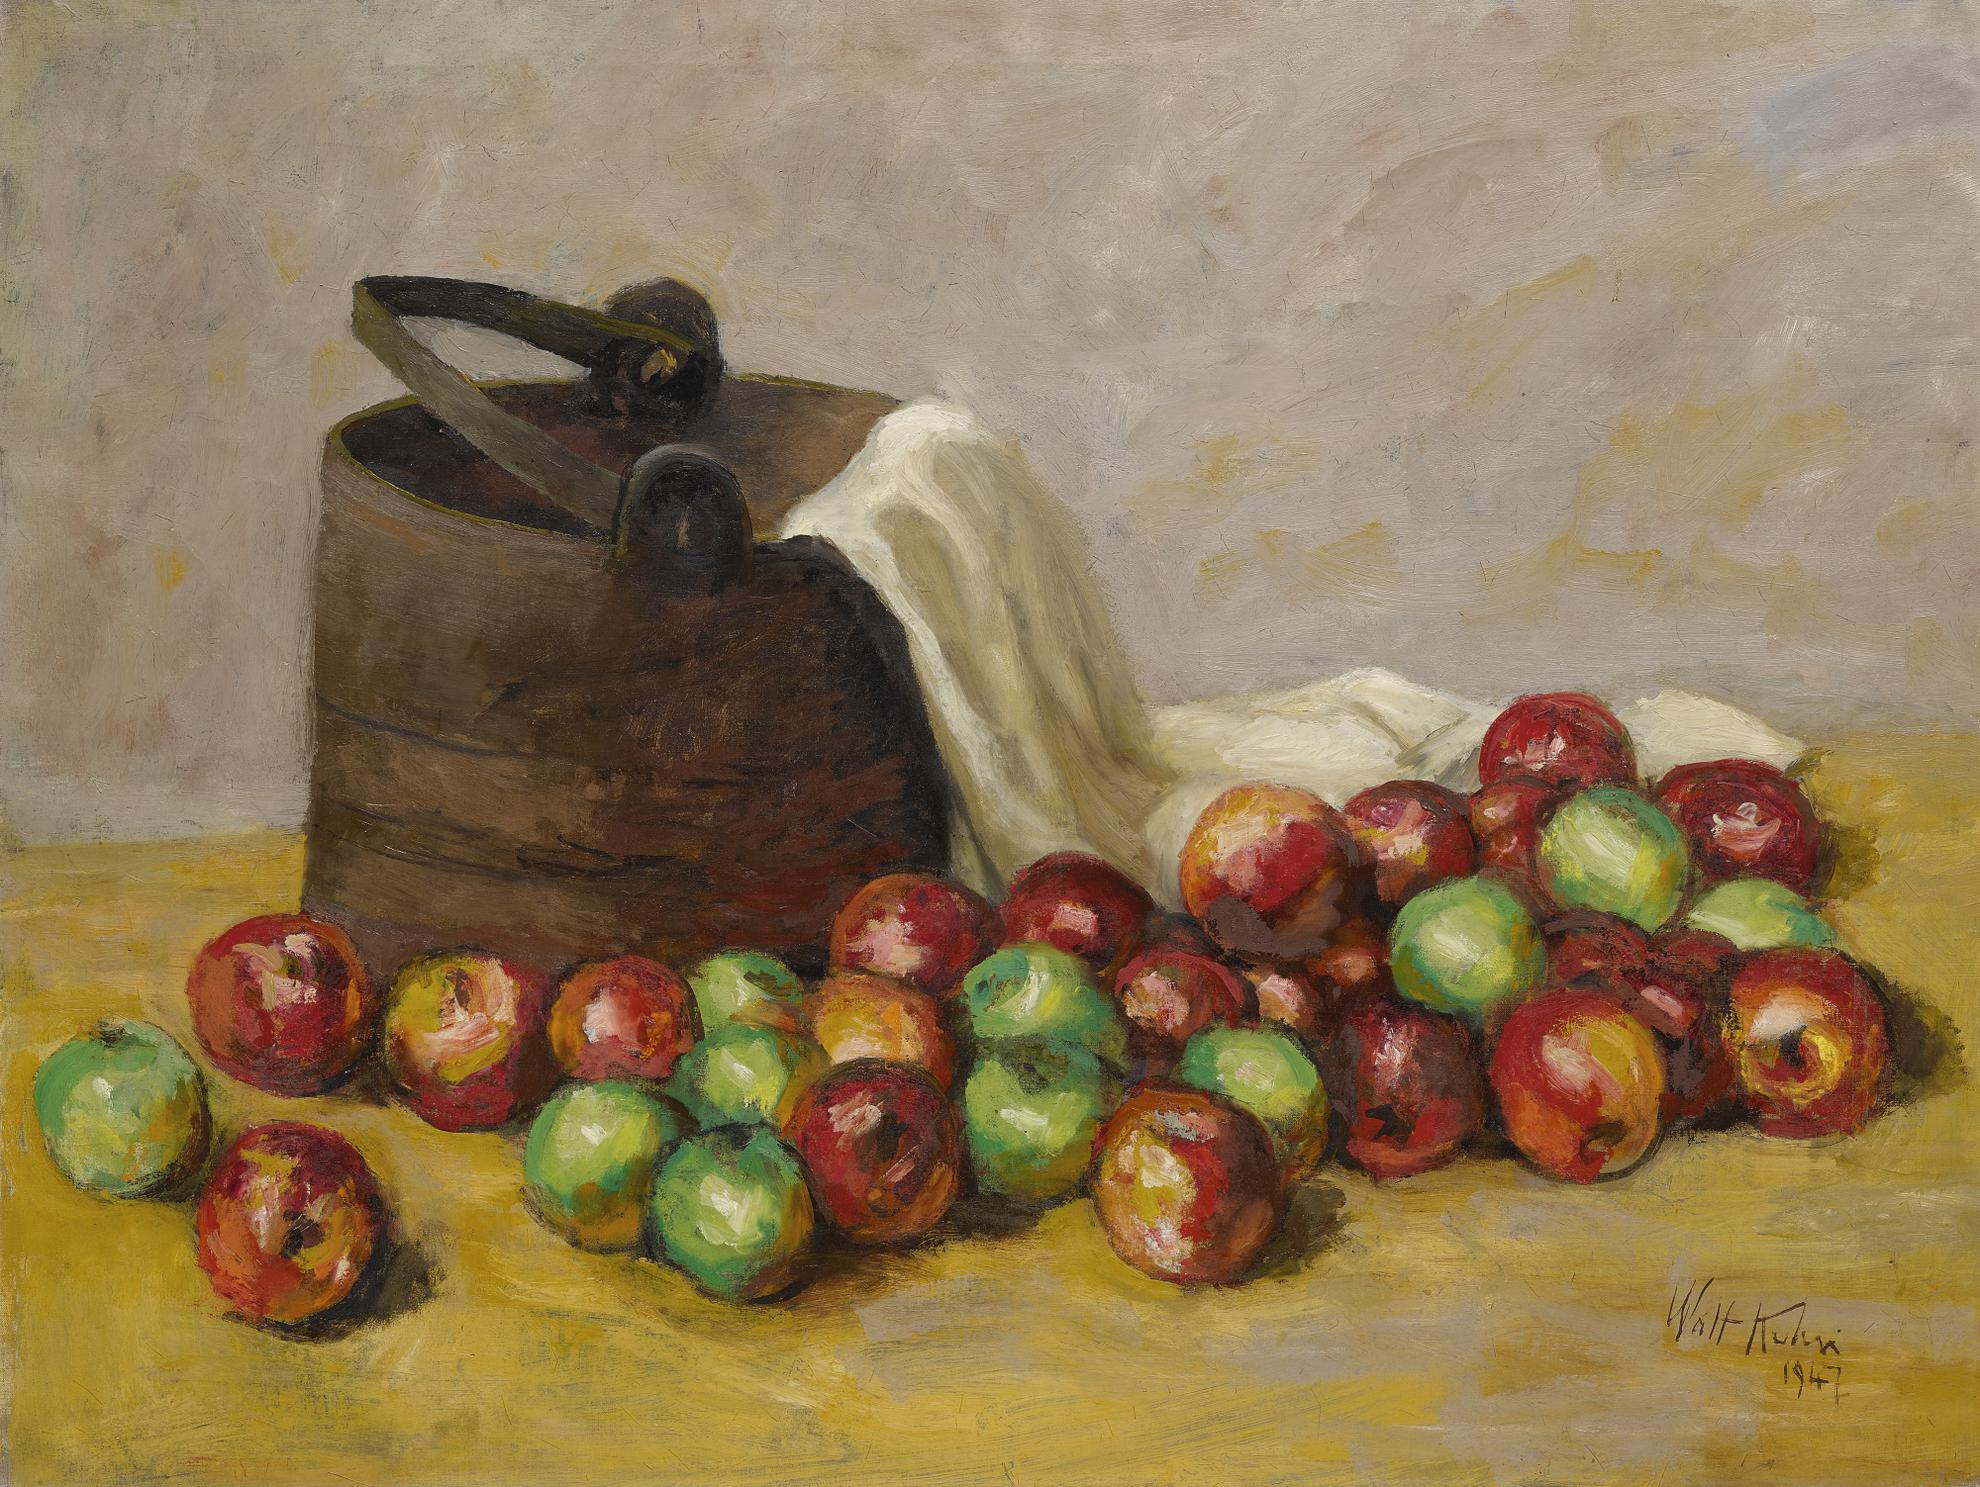 Walt Kuhn-Sap Bucket And Apples-1947